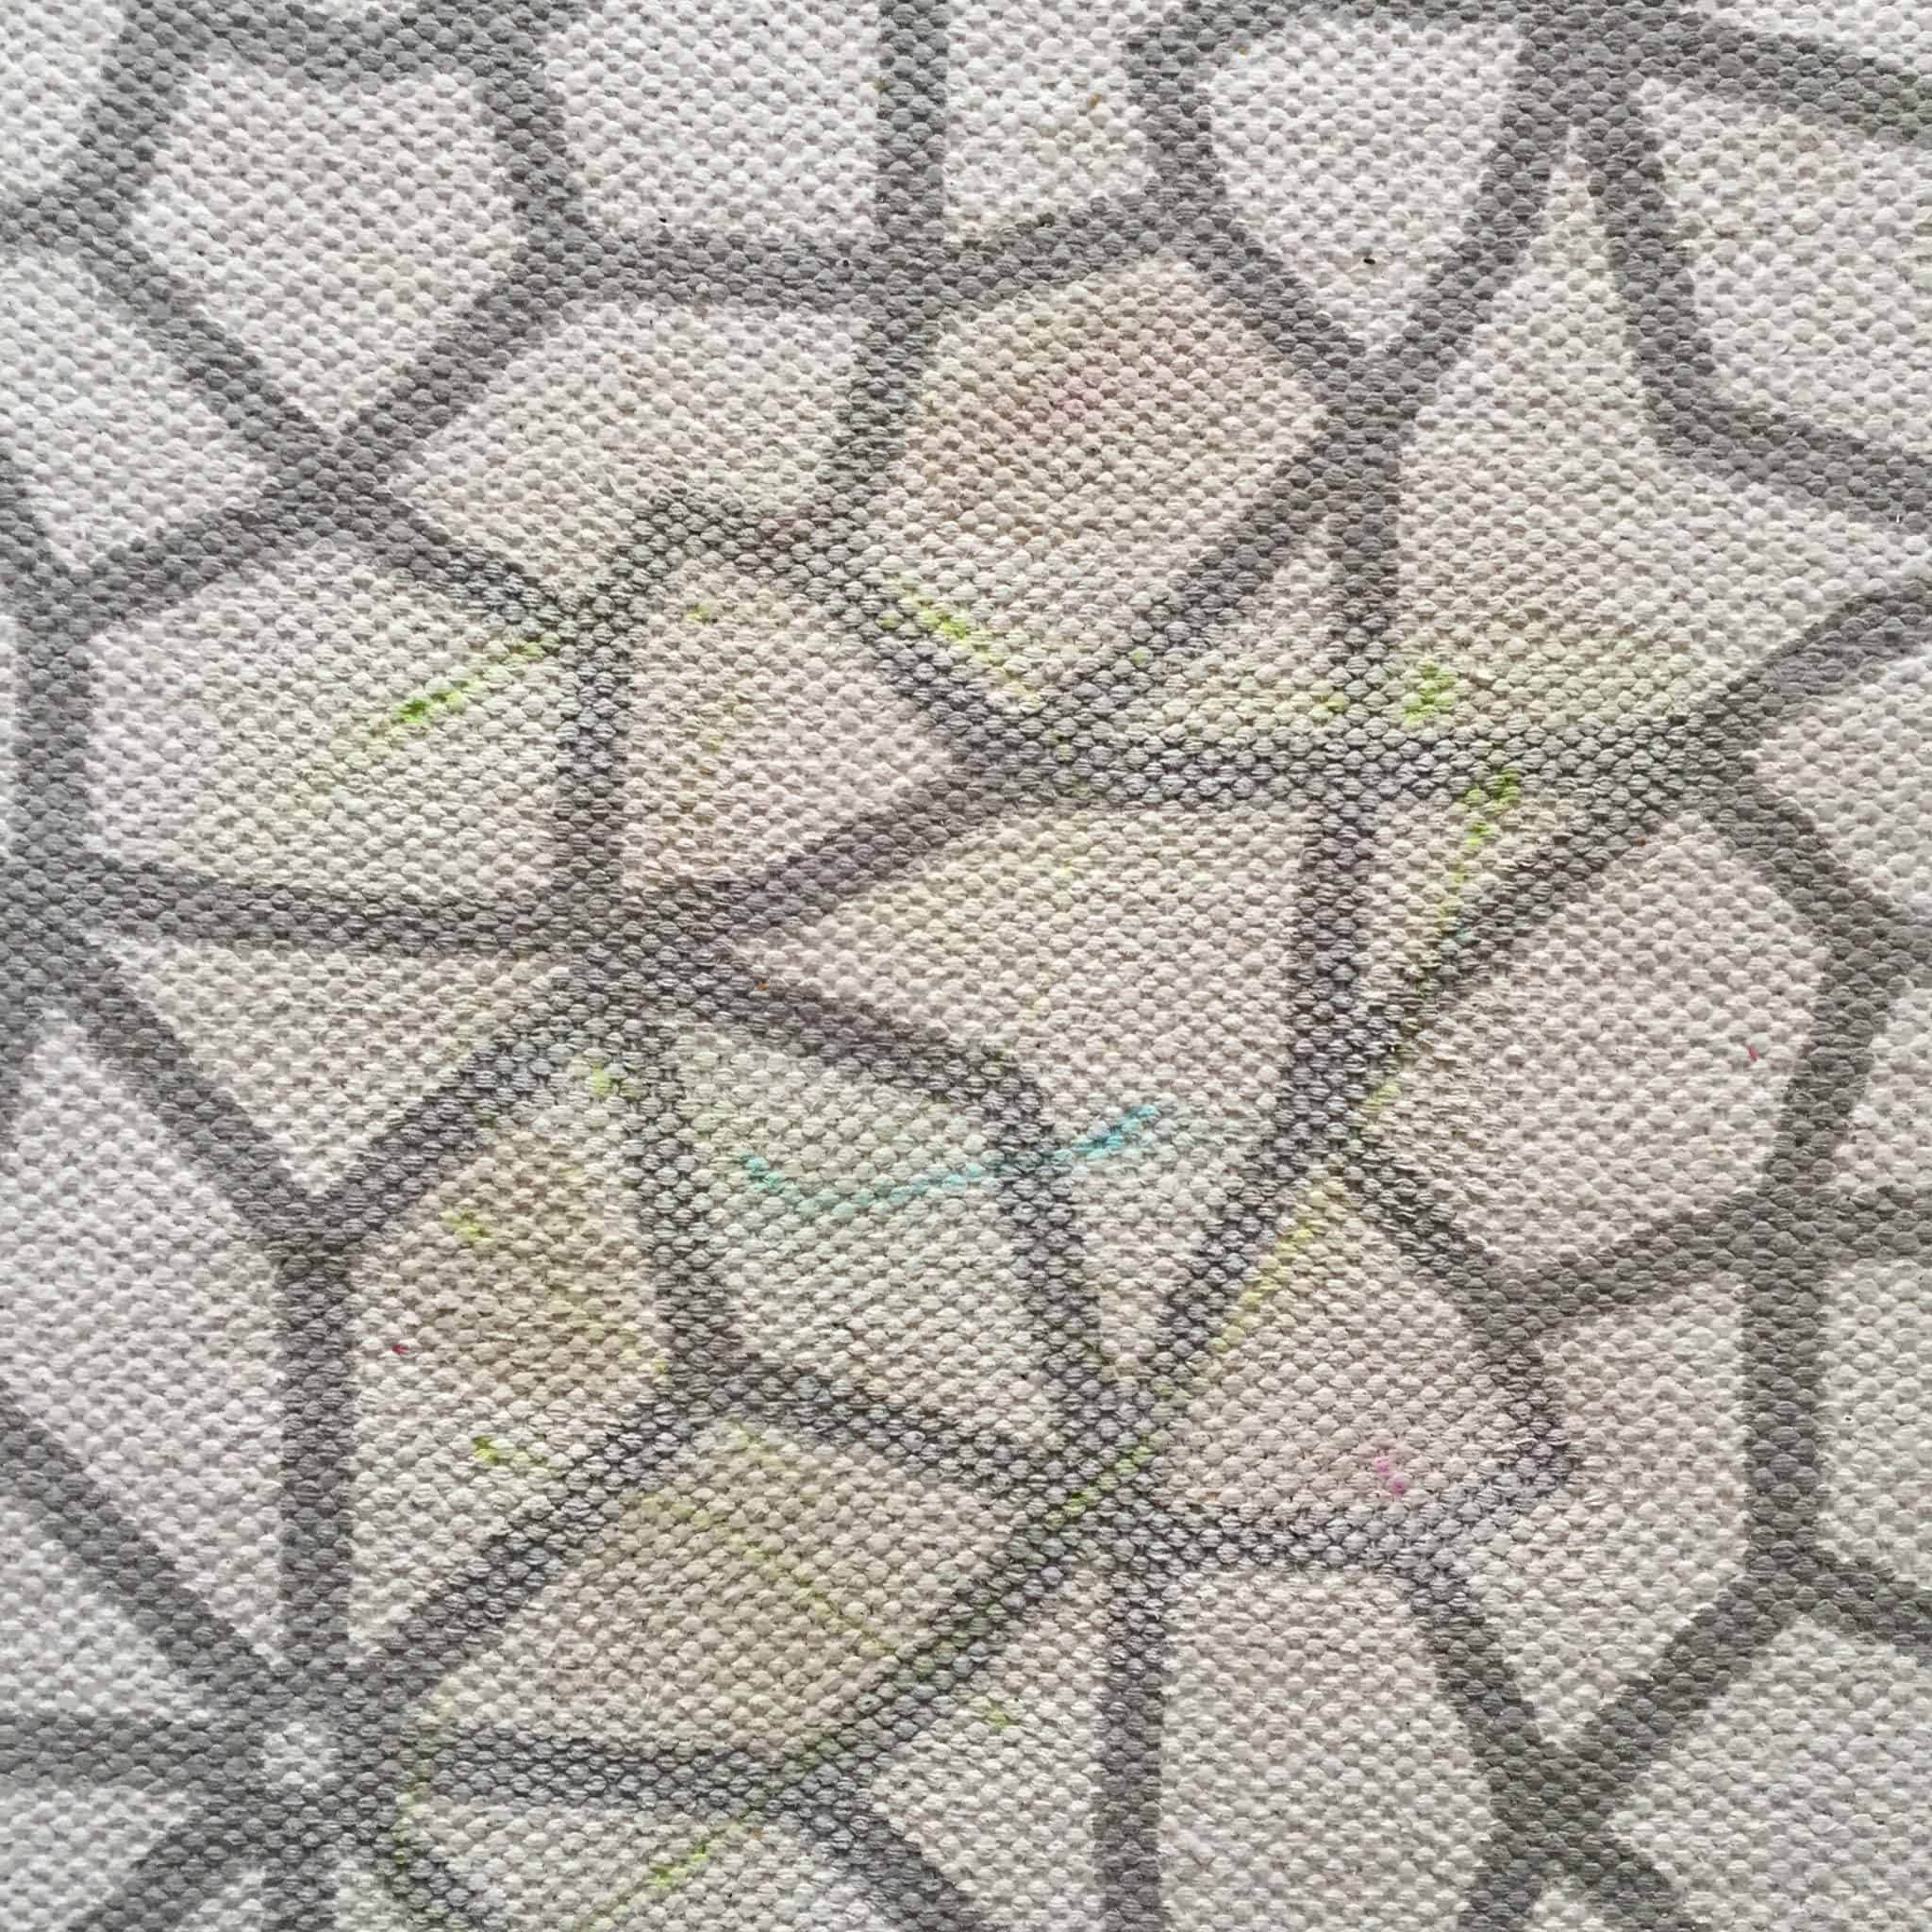 Grey and cream rug with pen scribbles